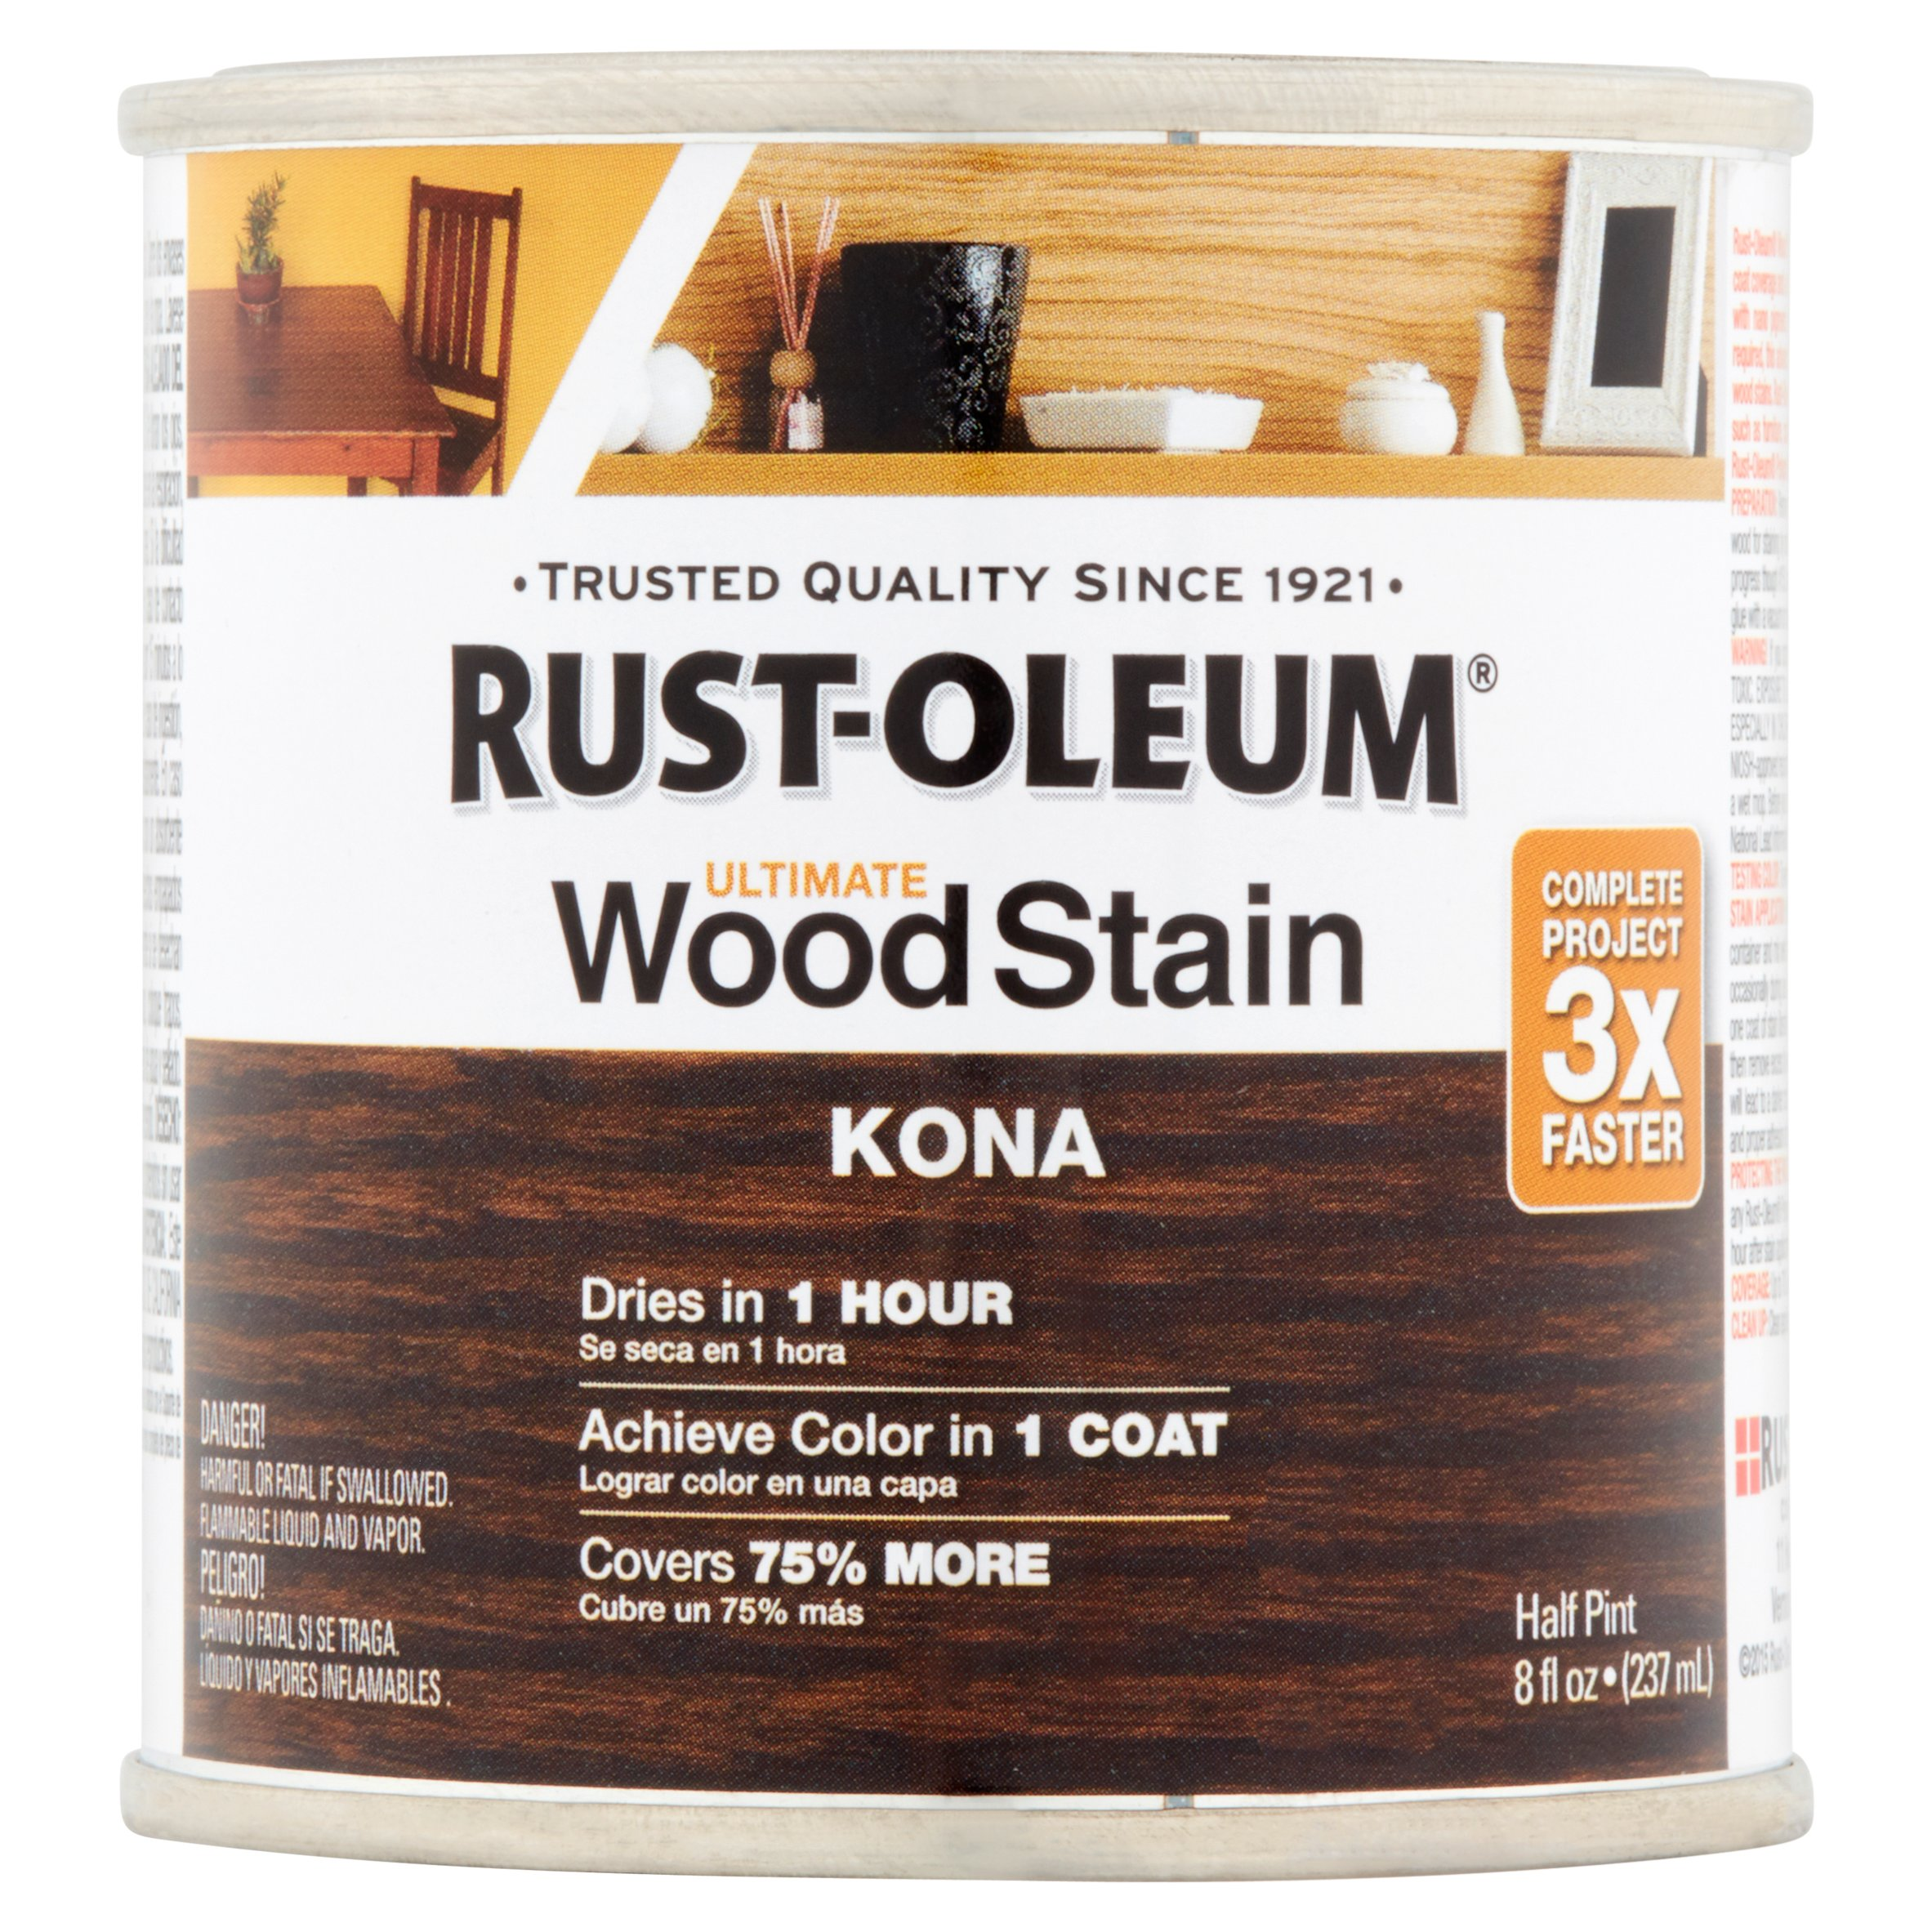 Rust-Oleum Kona Ultimate Wood Stain, 8 fl oz